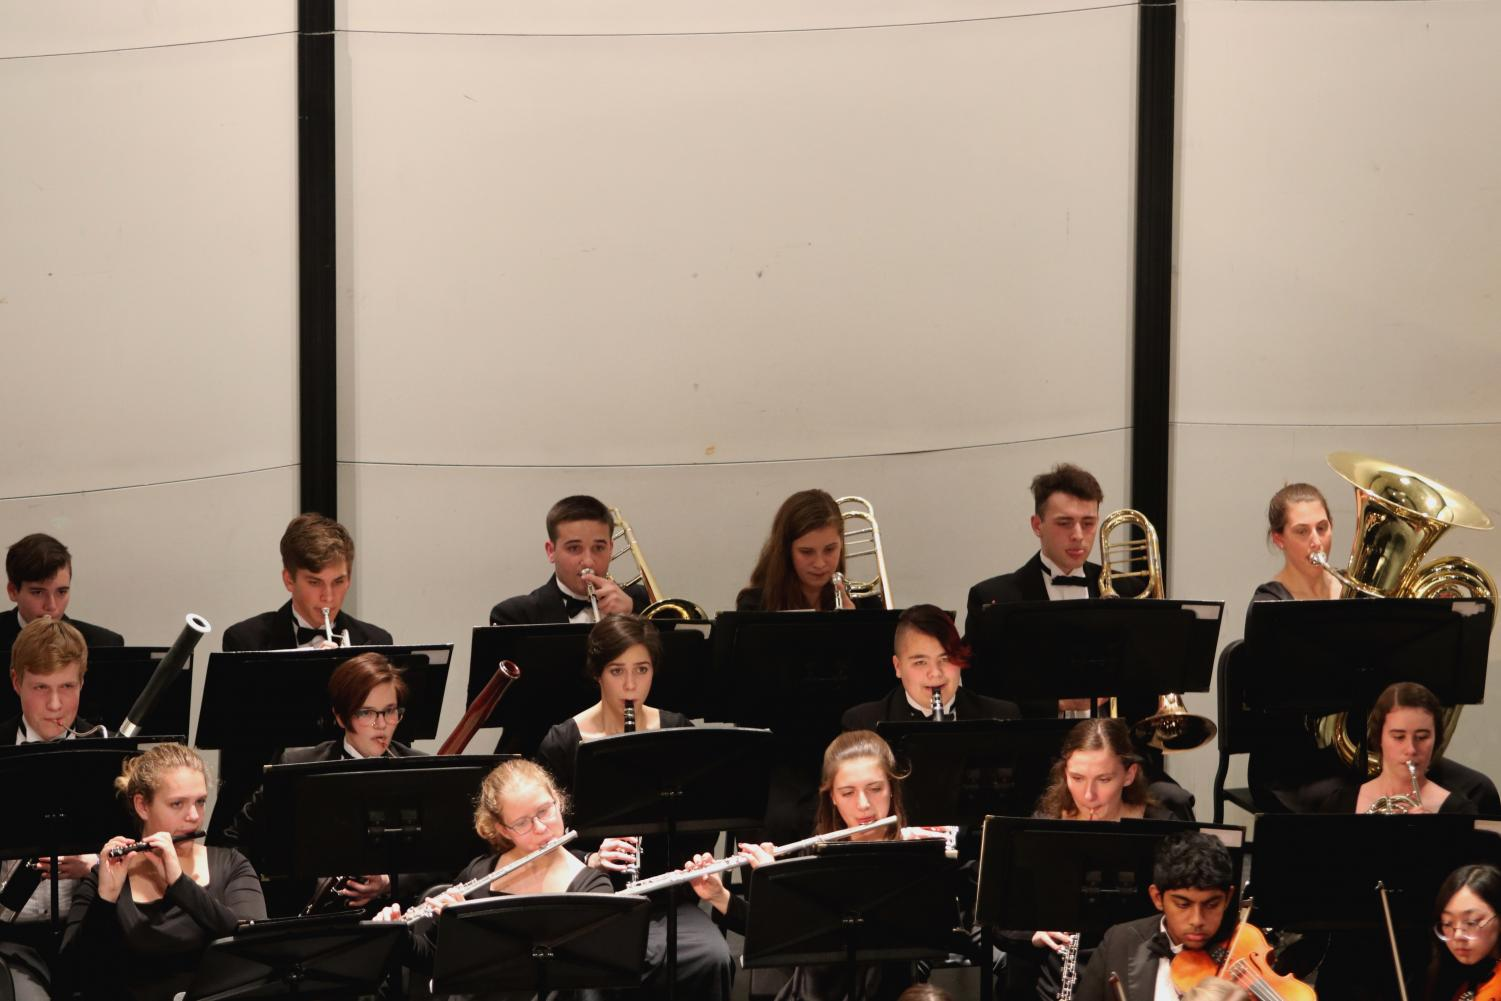 Members+of+the+Wind+Ensemble+join+the+orchestra+in+their+last+song.